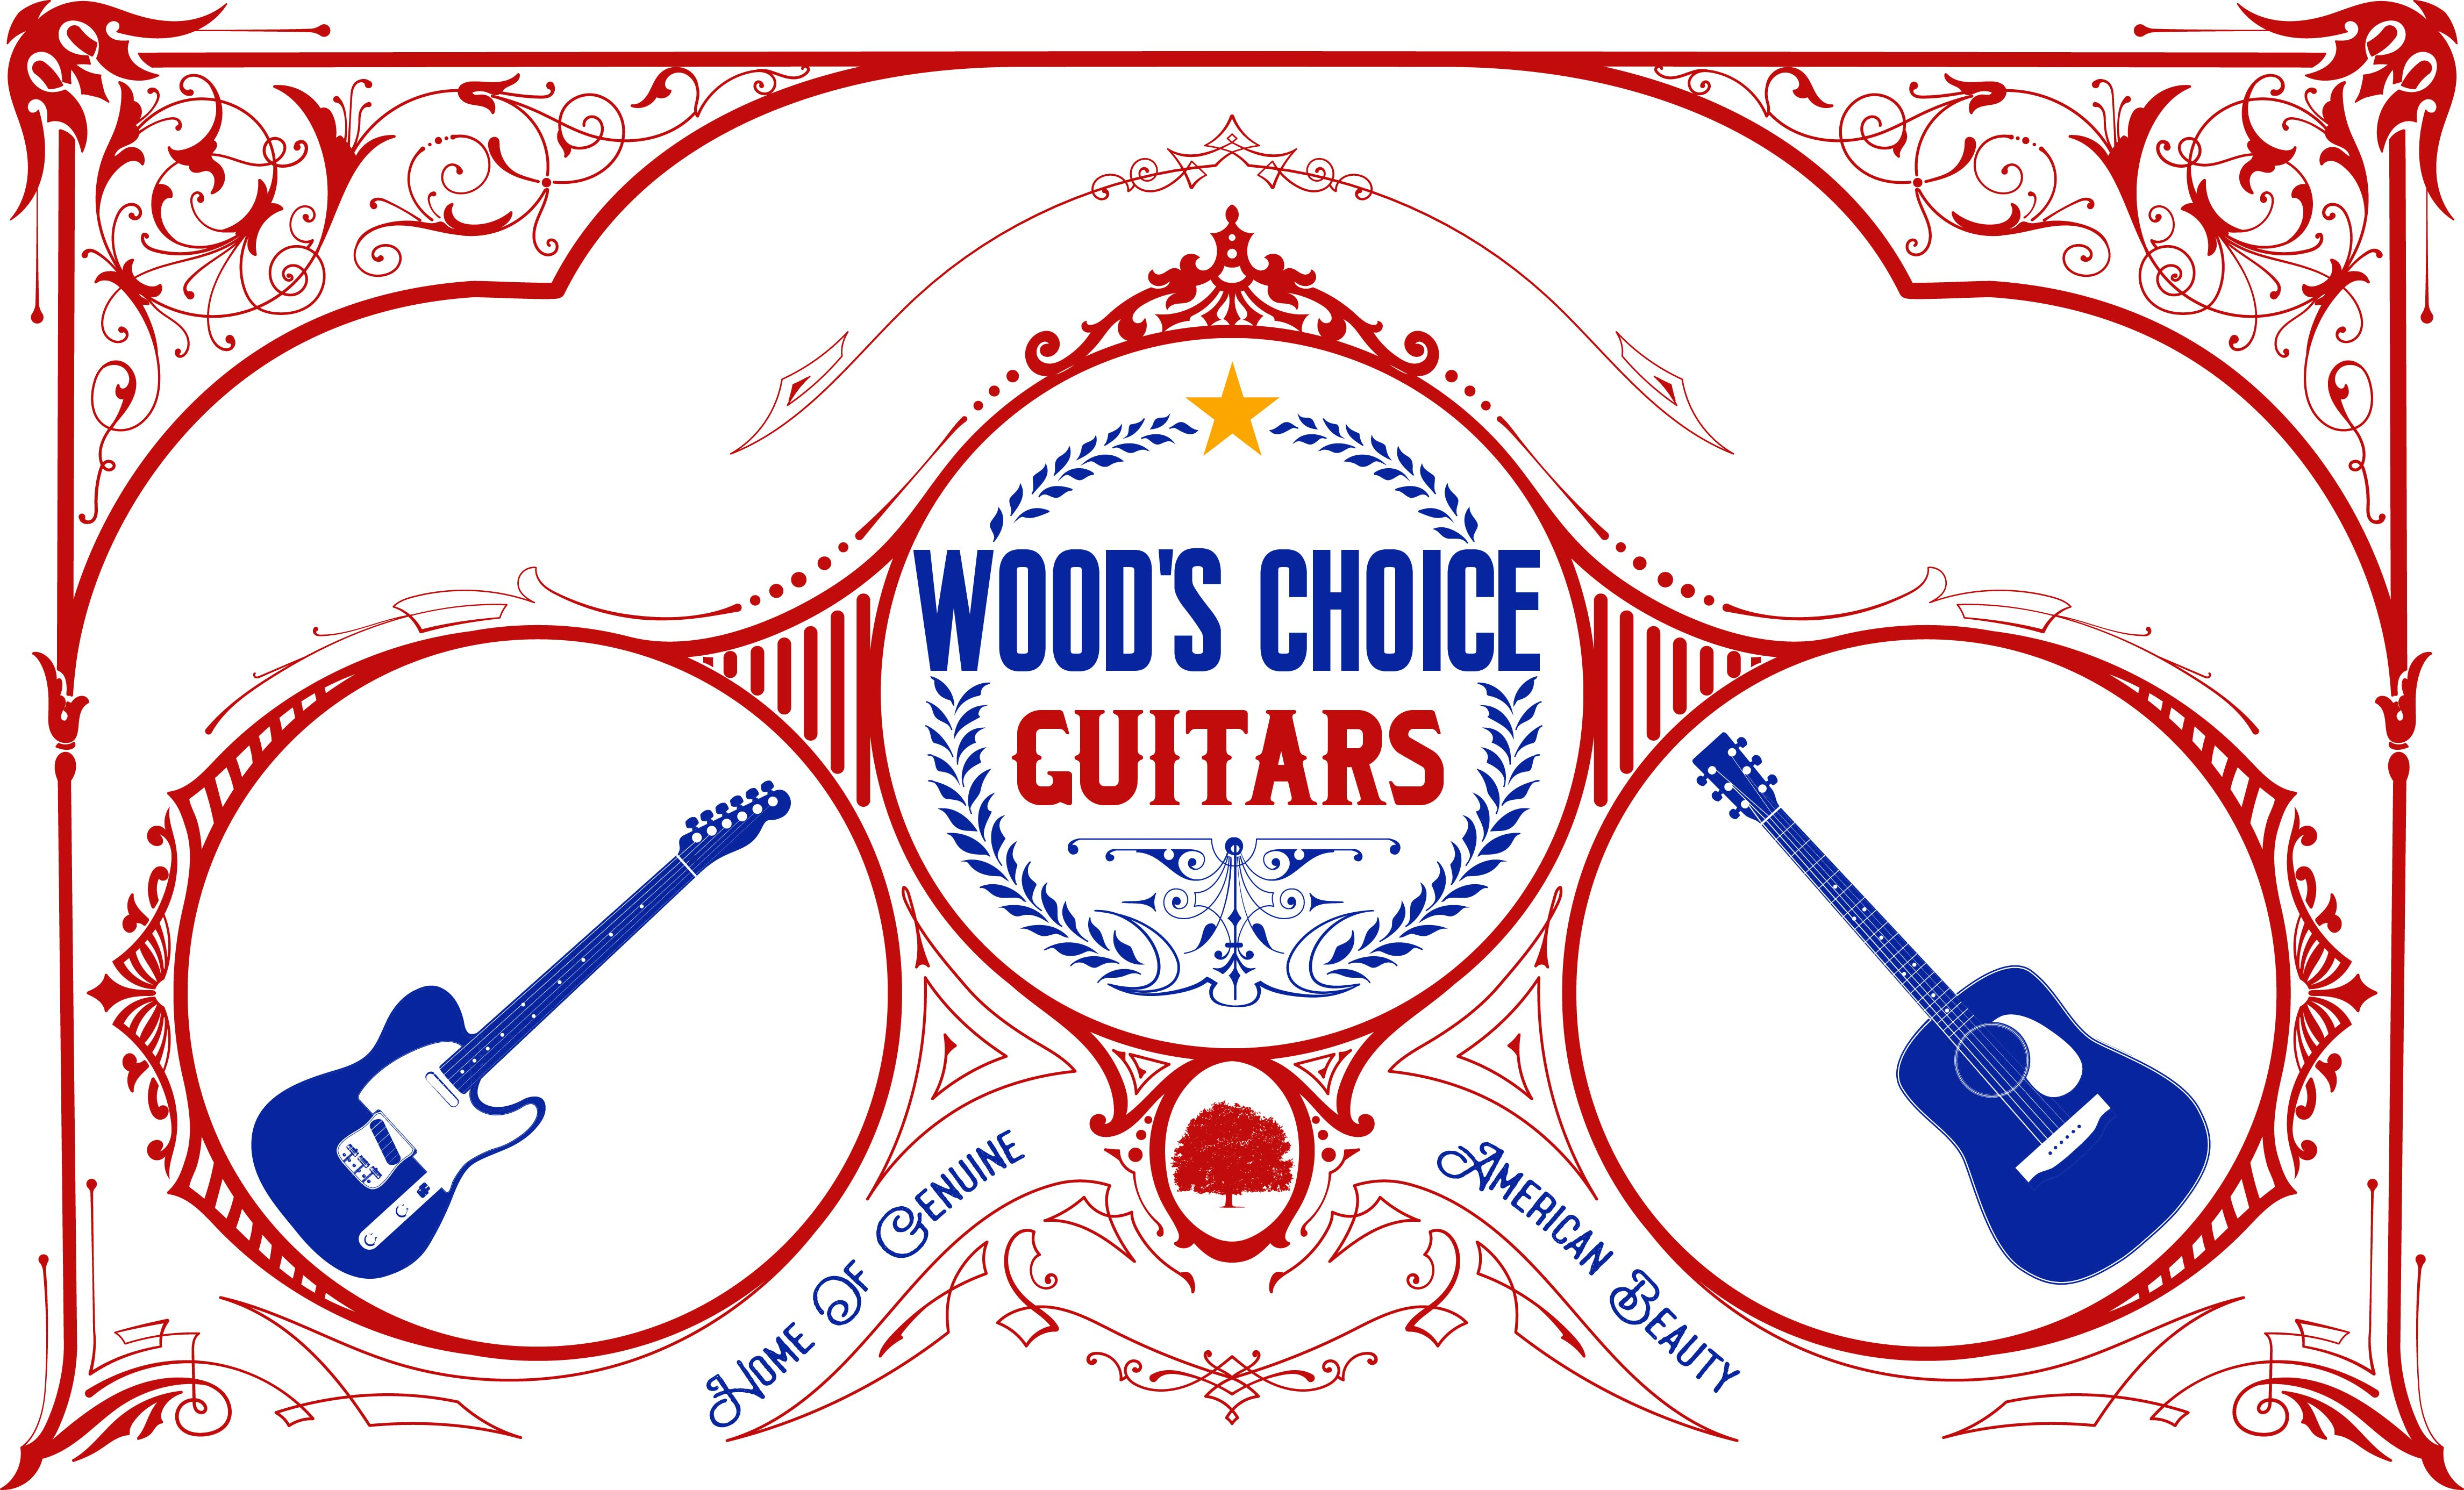 Wood's Choice Guitars